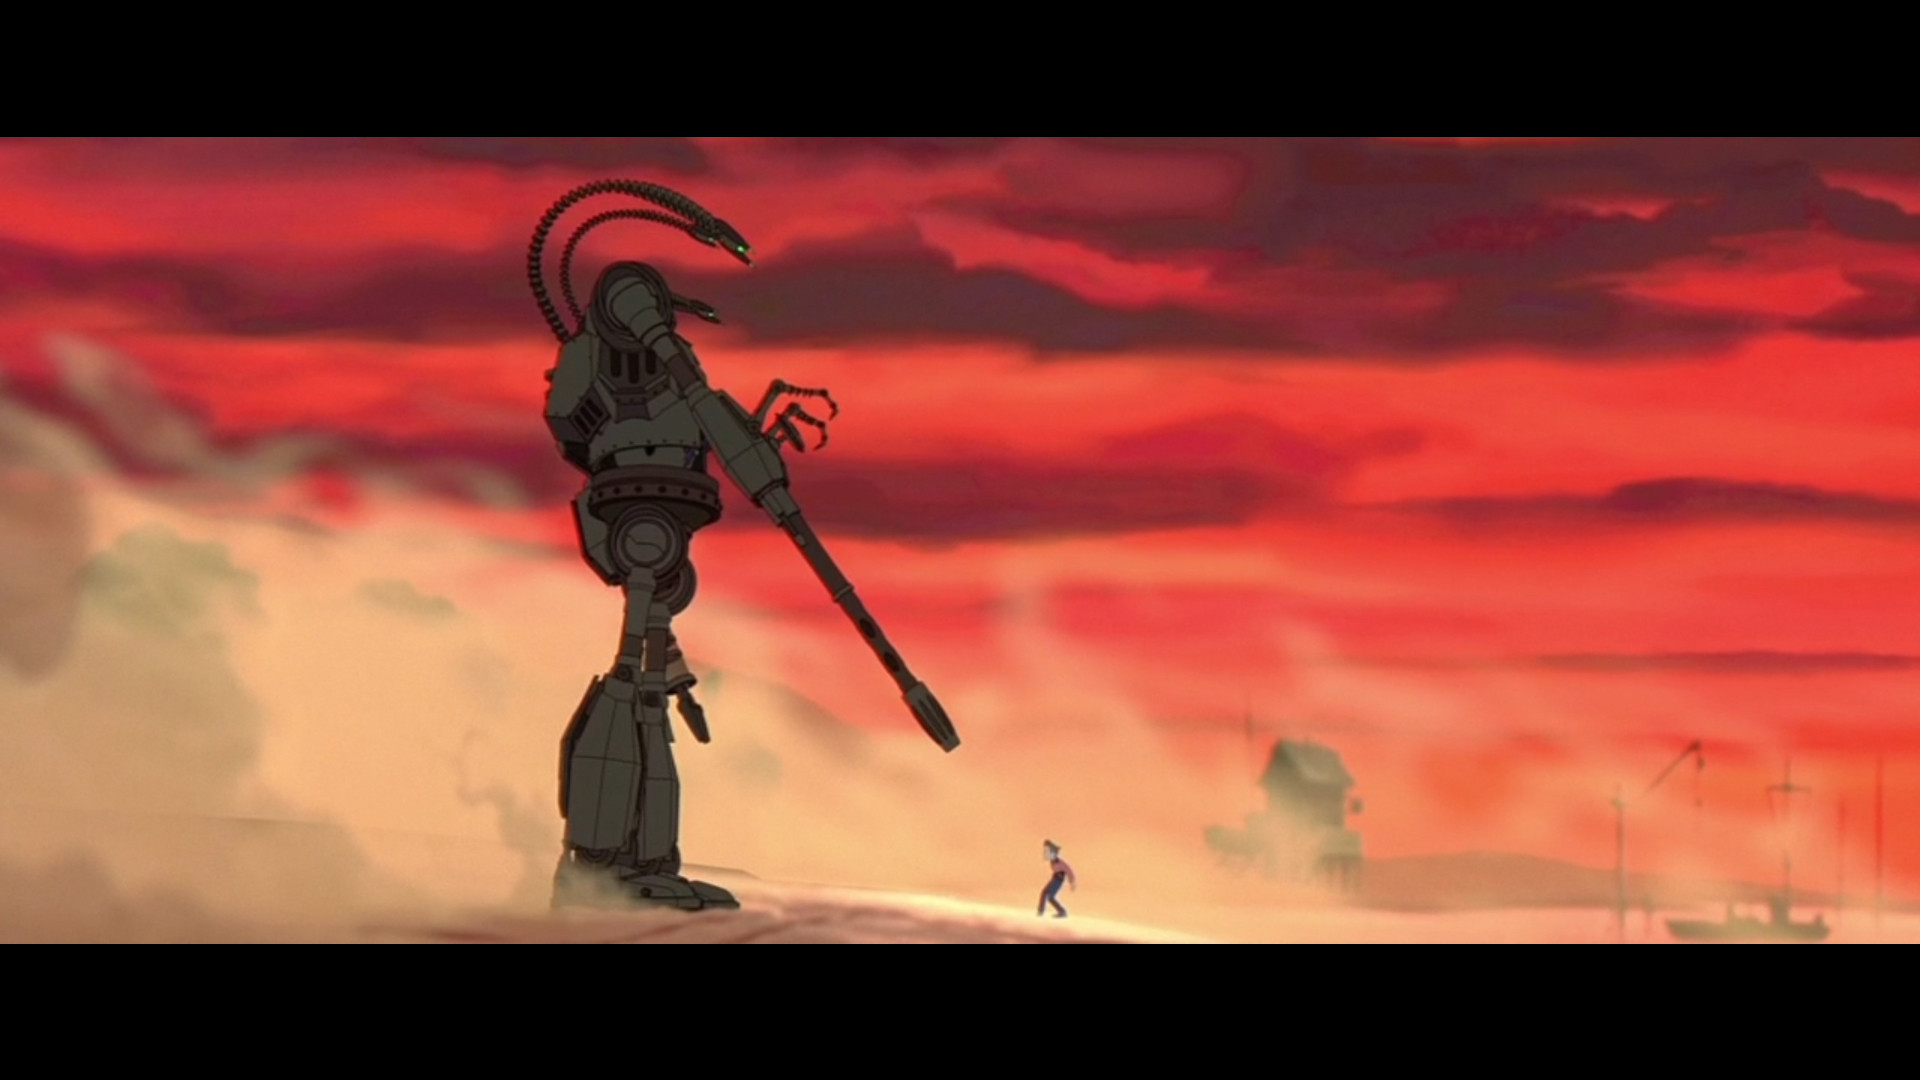 Couldn't find this frame from The Iron Giant so here's a 1080p screen .